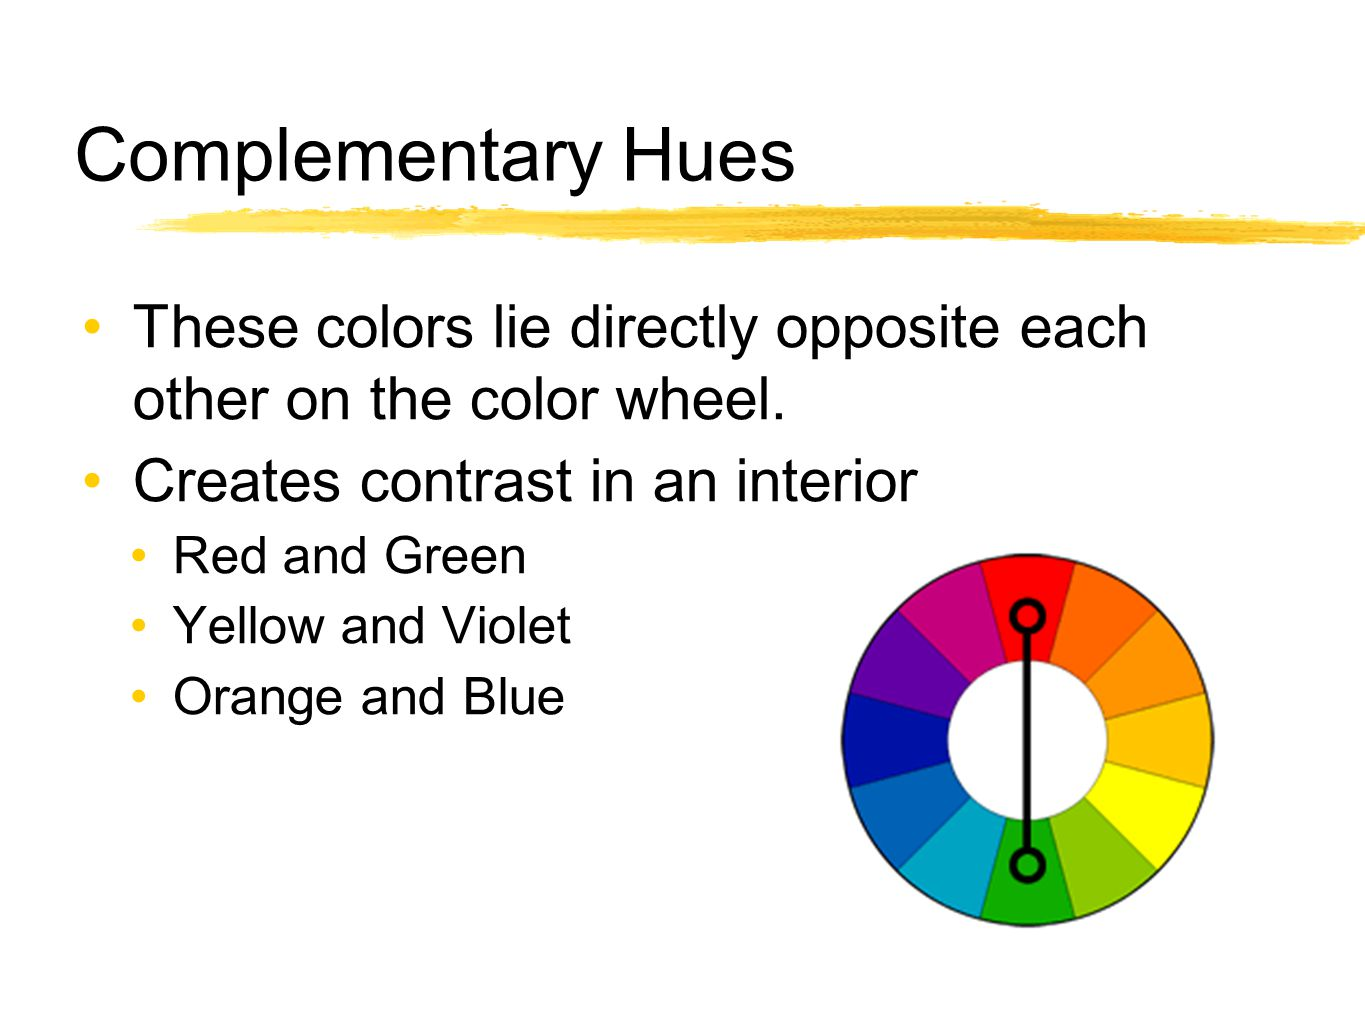 Complementary Hues These colors lie directly opposite each other on the color wheel. Creates contrast in an interior.